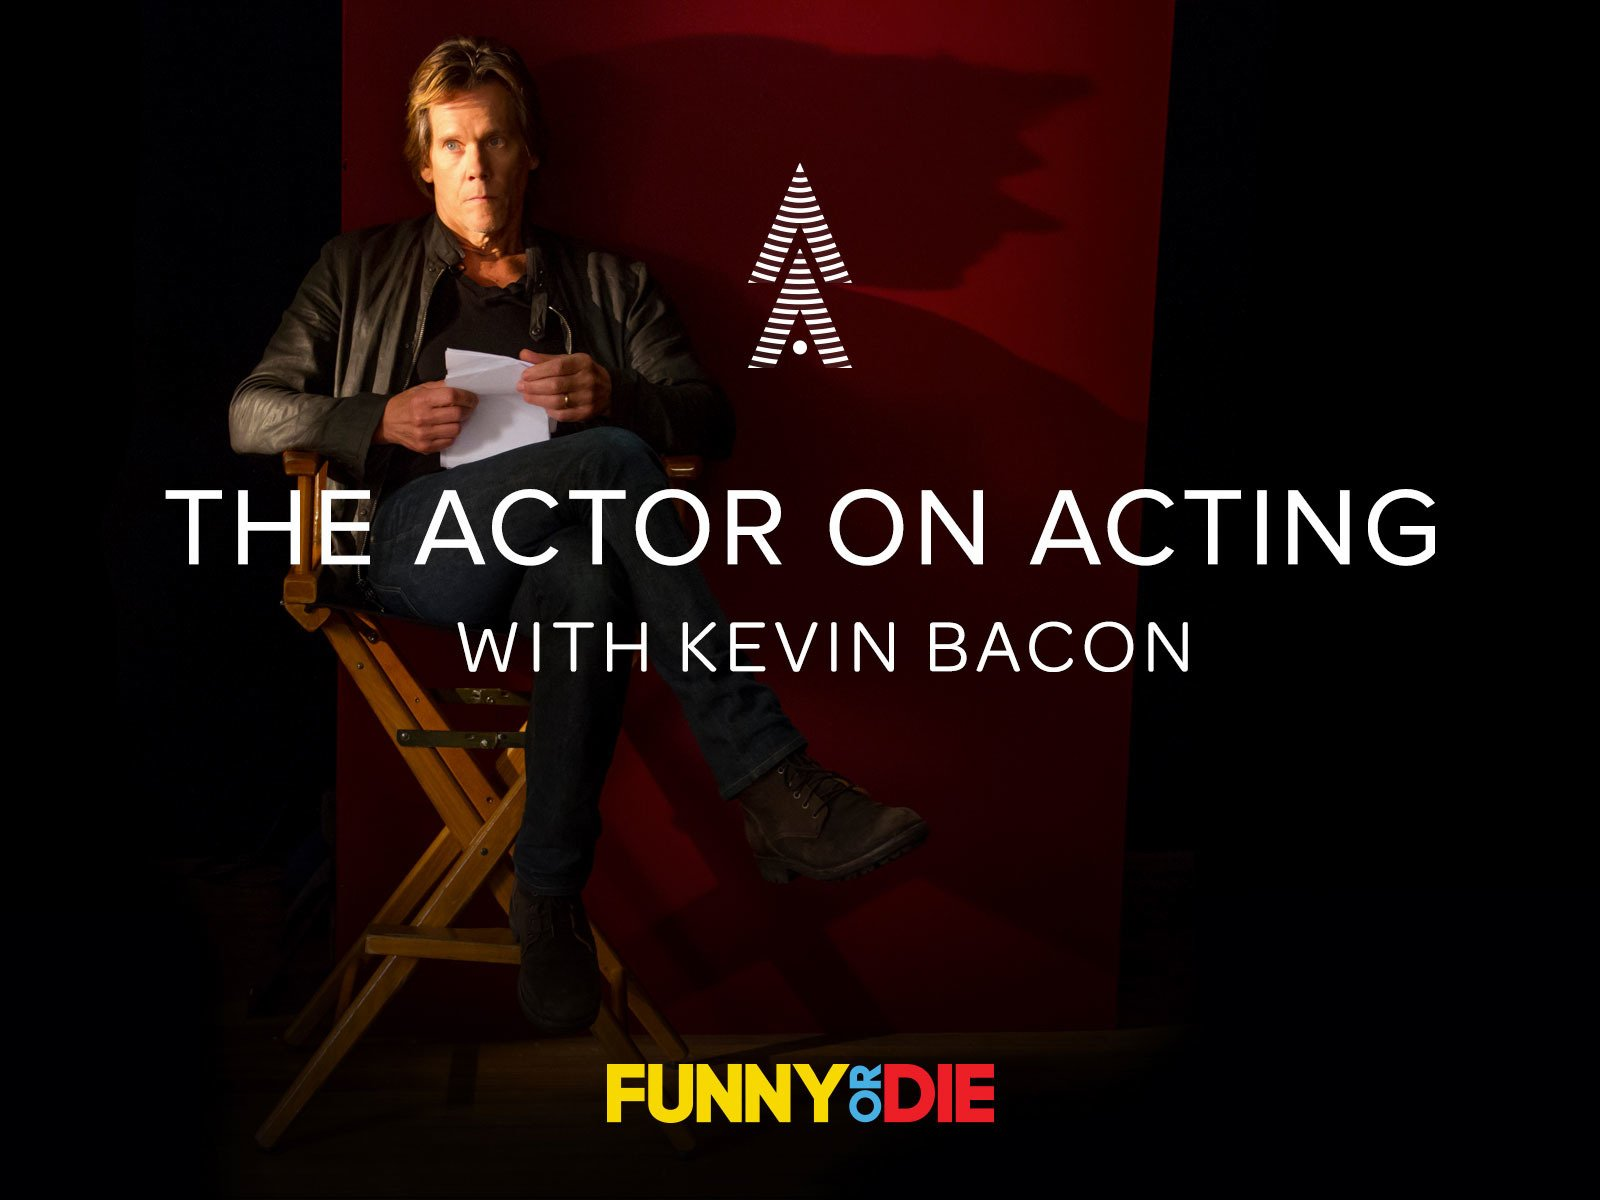 Amazoncom Watch The Actor On Acting With Kevin Bacon Prime Video 1600x1200